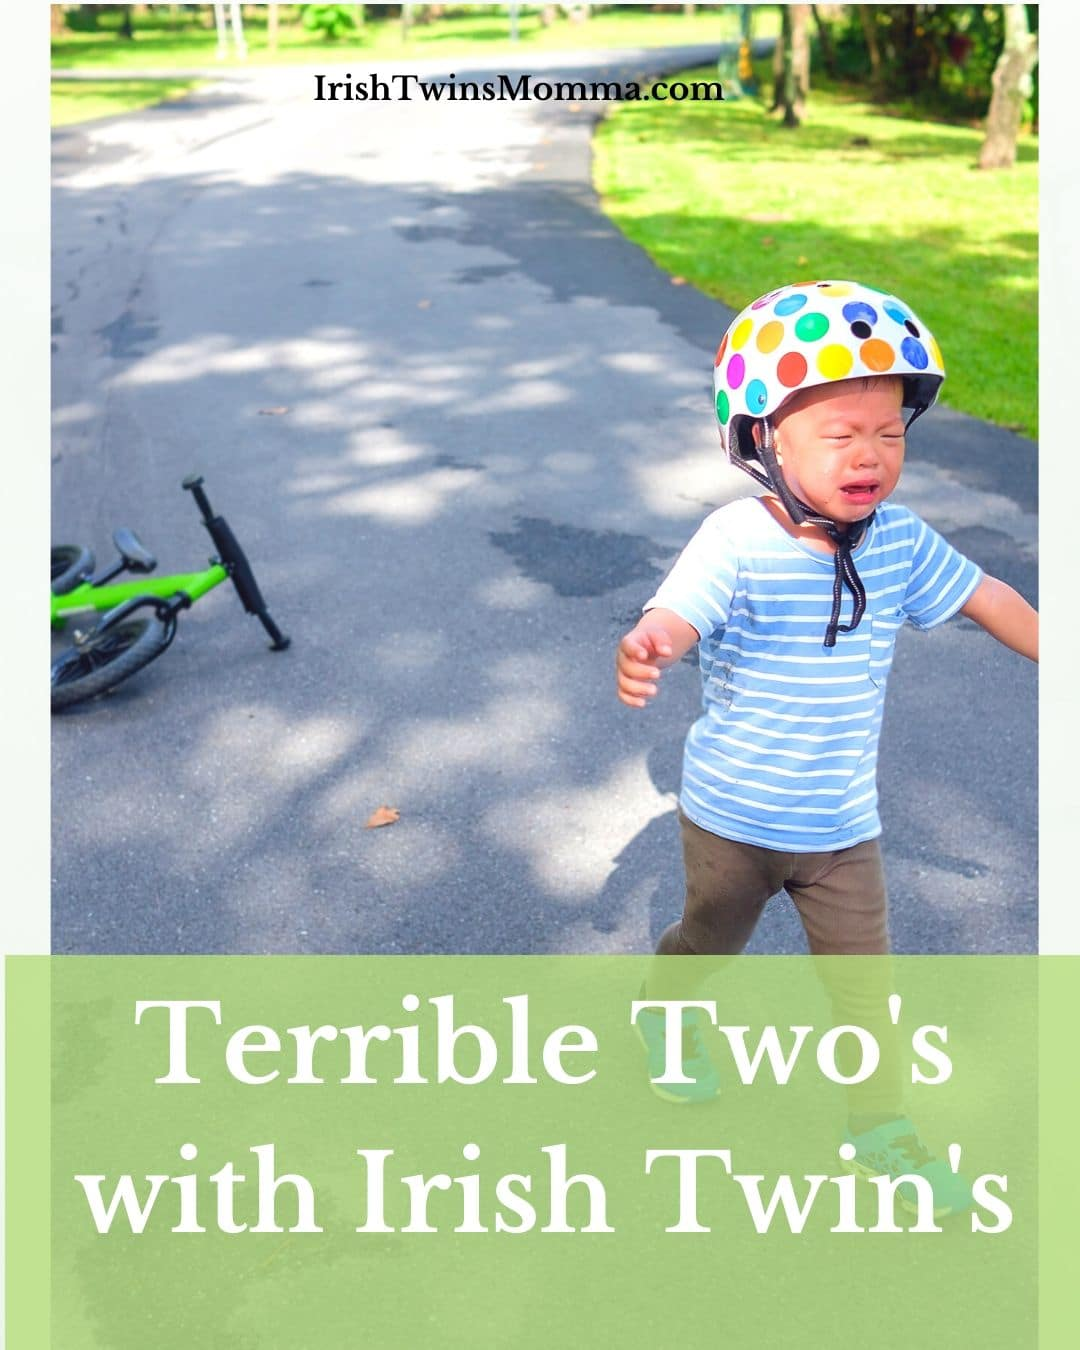 Terrible twos with Irish twins are rough because it lasts 2 years. Just when you think it is over it begins again. Stay STRONG parents this is only the beginning!